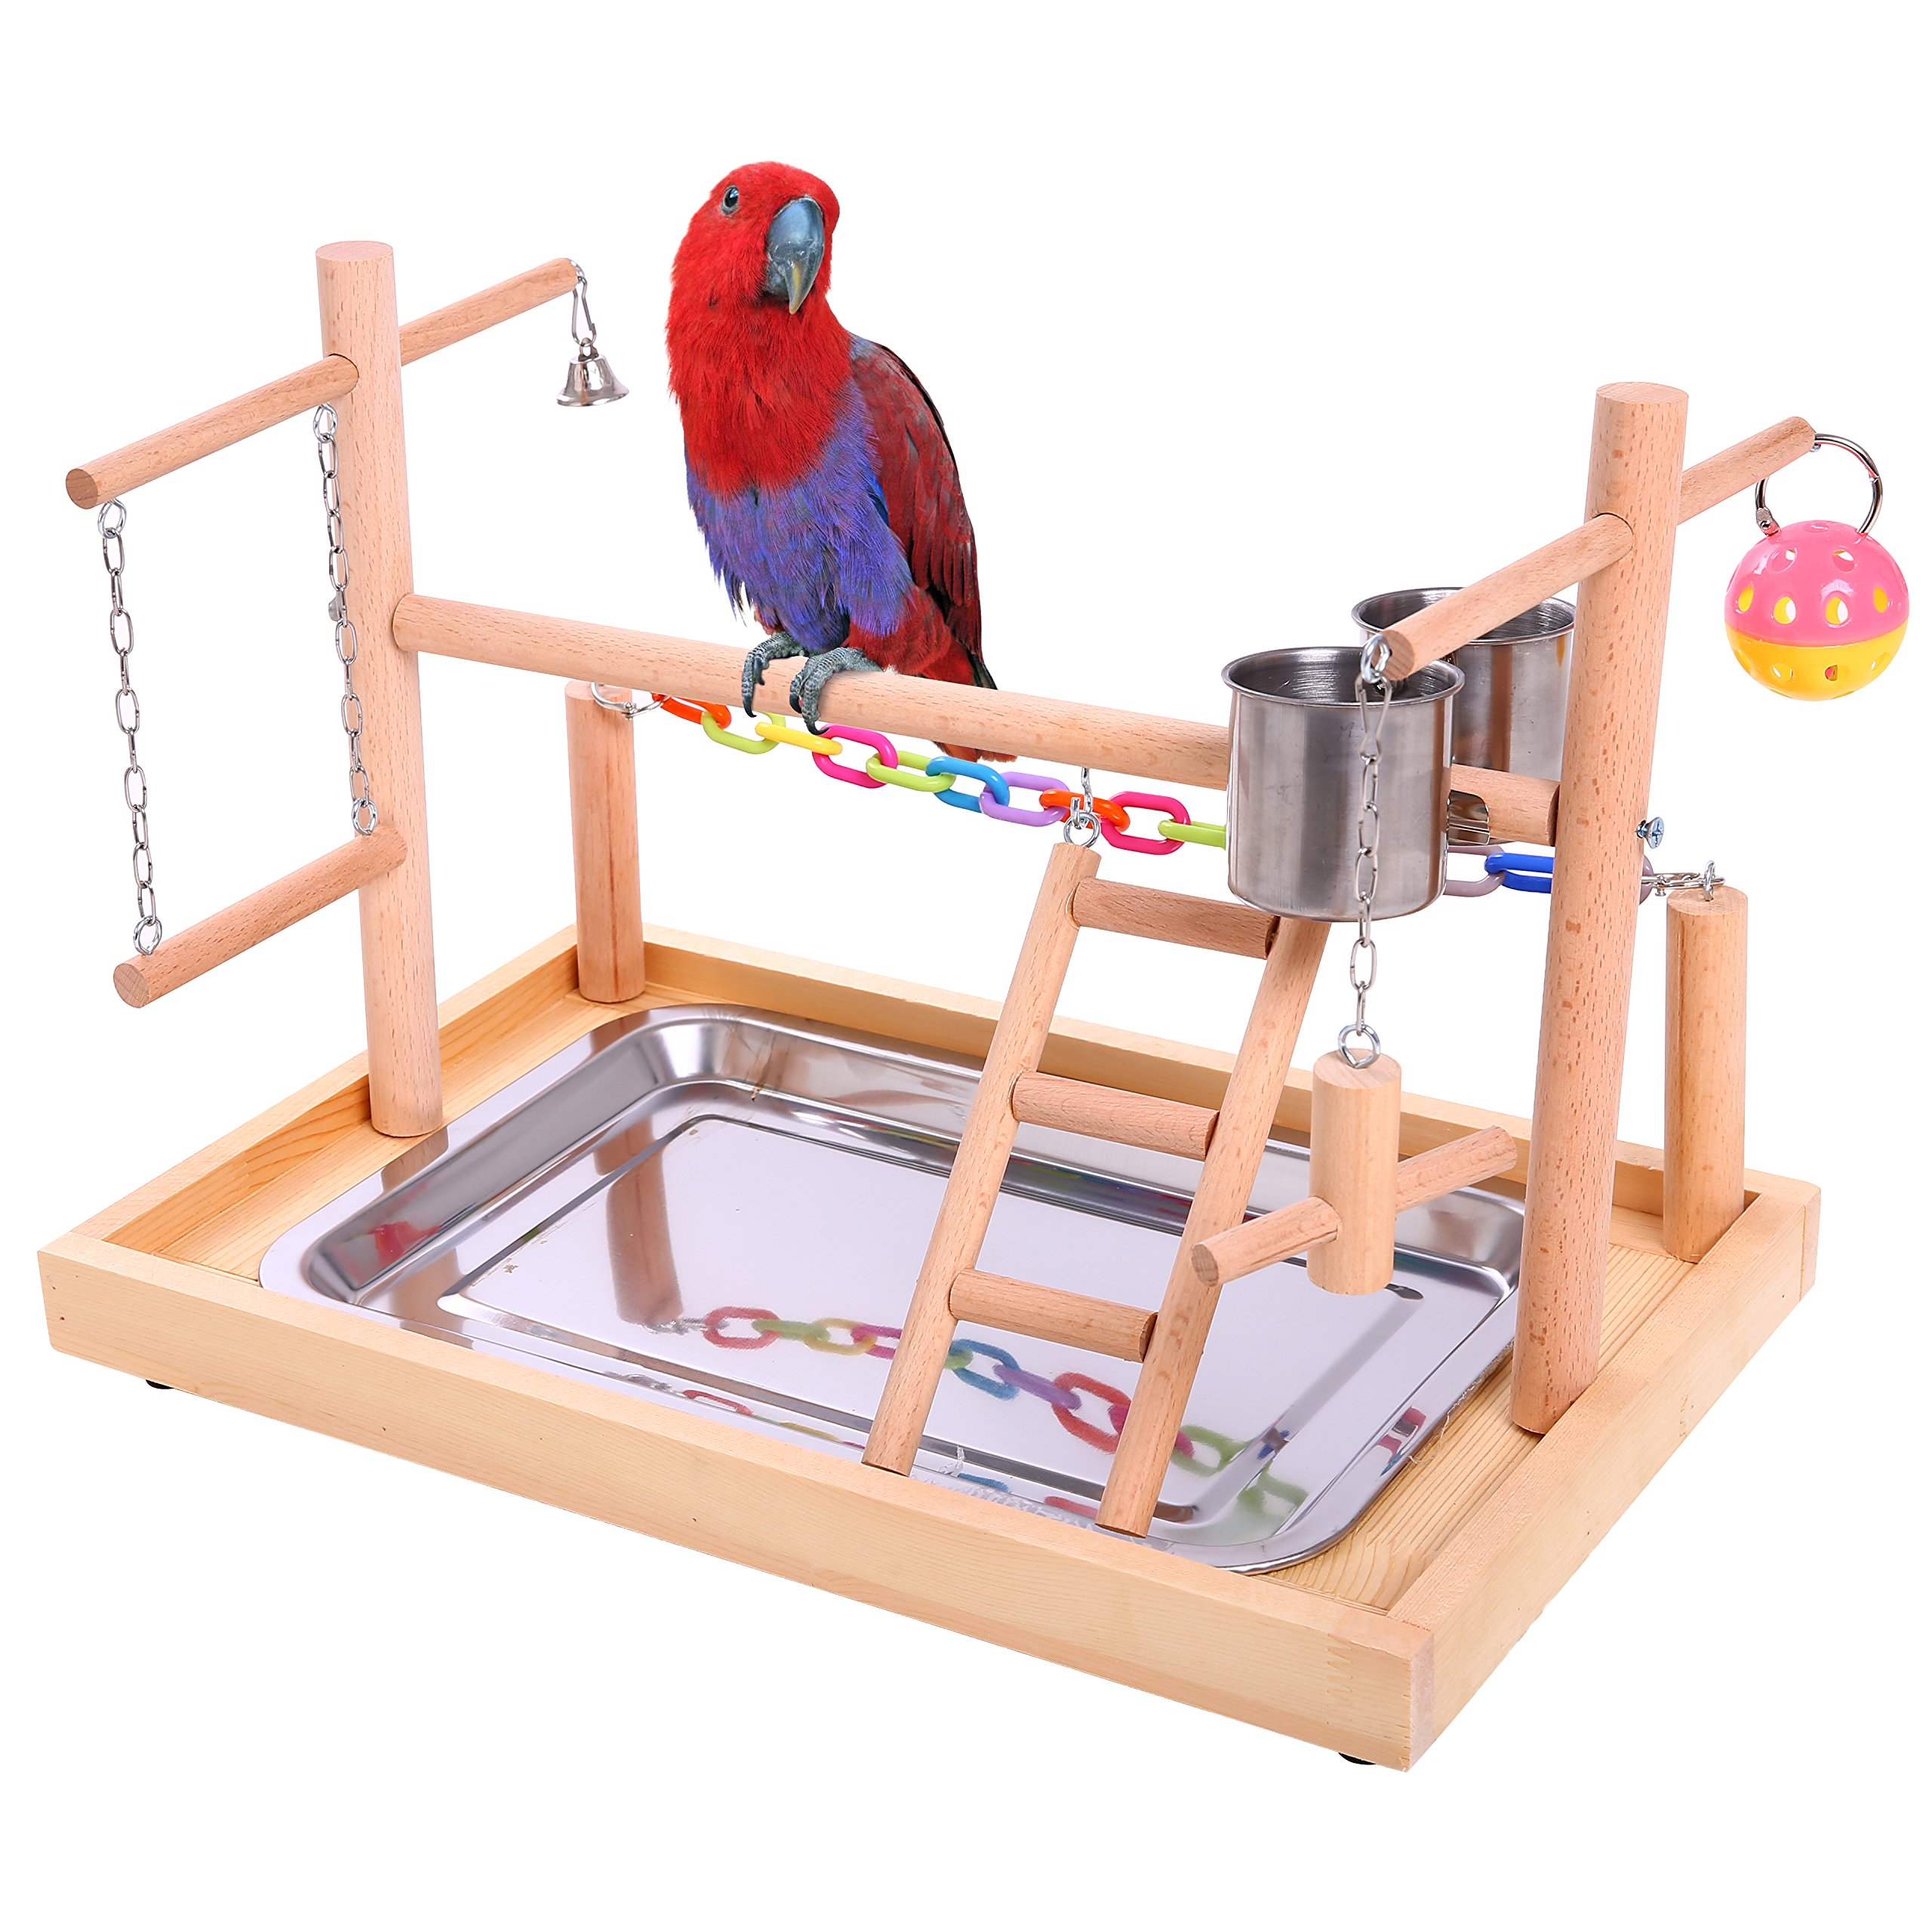 QBLEEV Bird Training Playground Parrot Wooden Perches Play Gym Playpen with Ladders Feeder Cup Chewing Bell Toys(15.3'' L9.6 W10.6 H) by QBLEEV